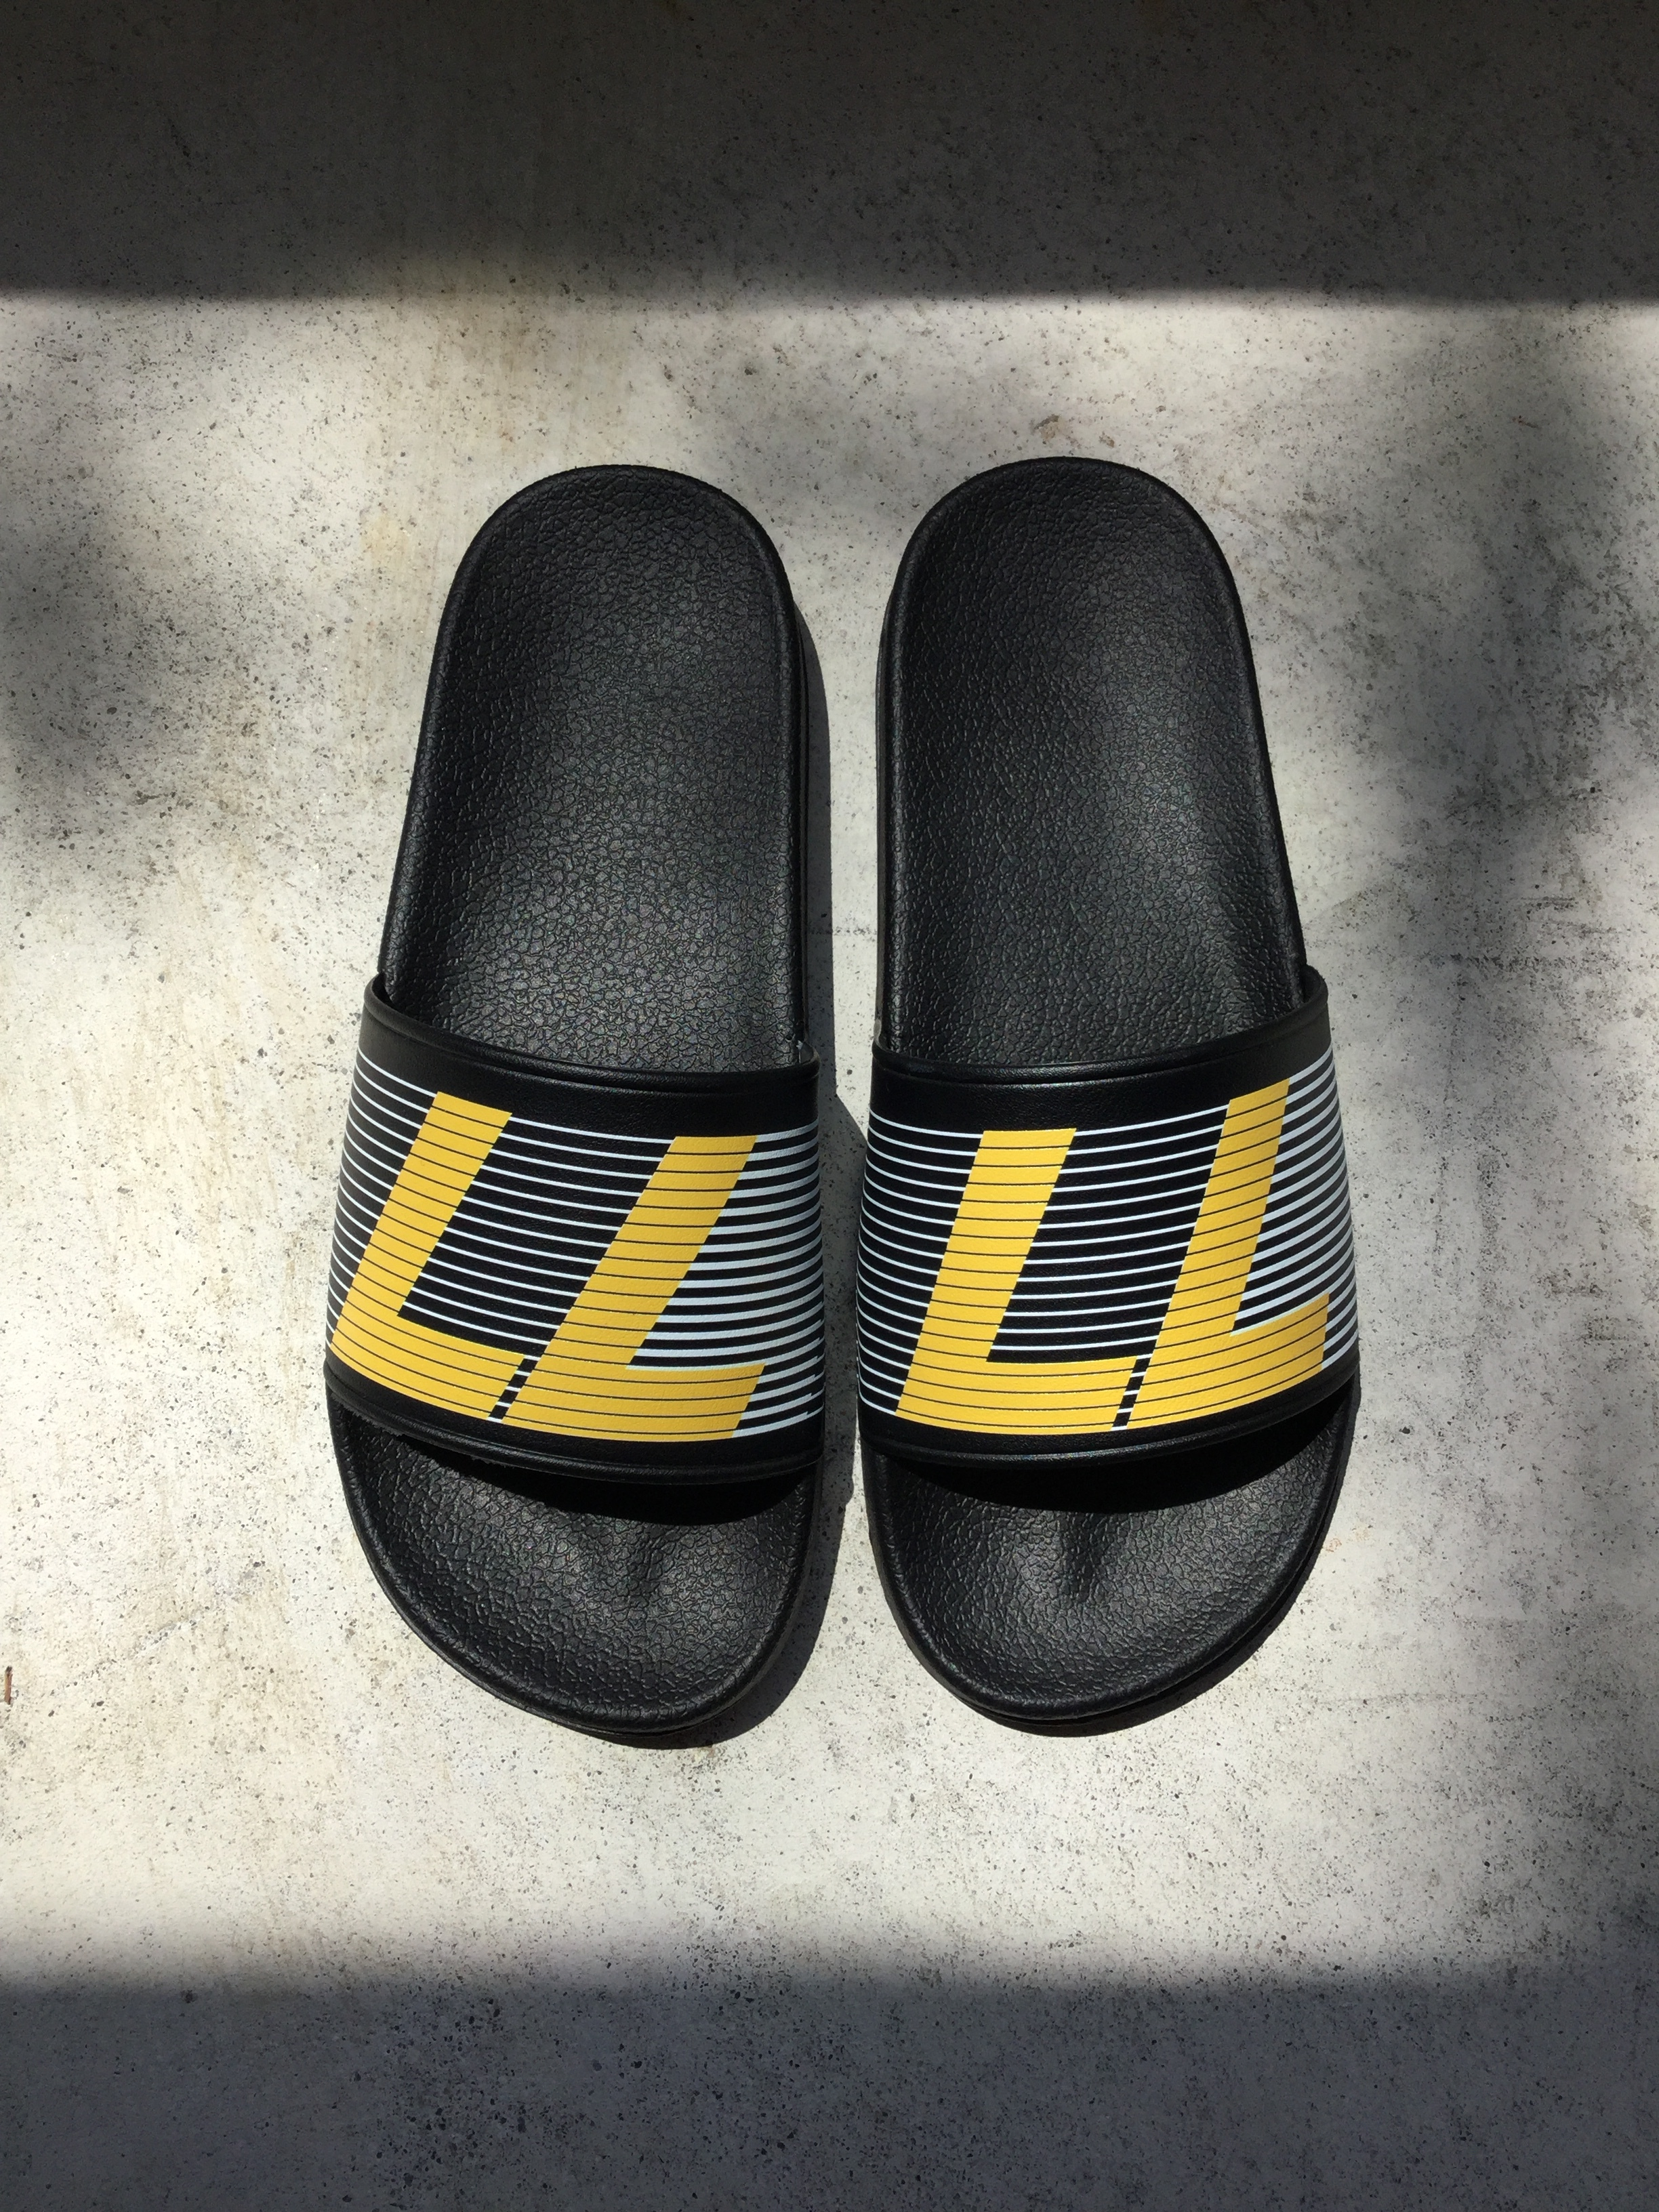 77circa   original print after sport sandals 2 (black×yellow)